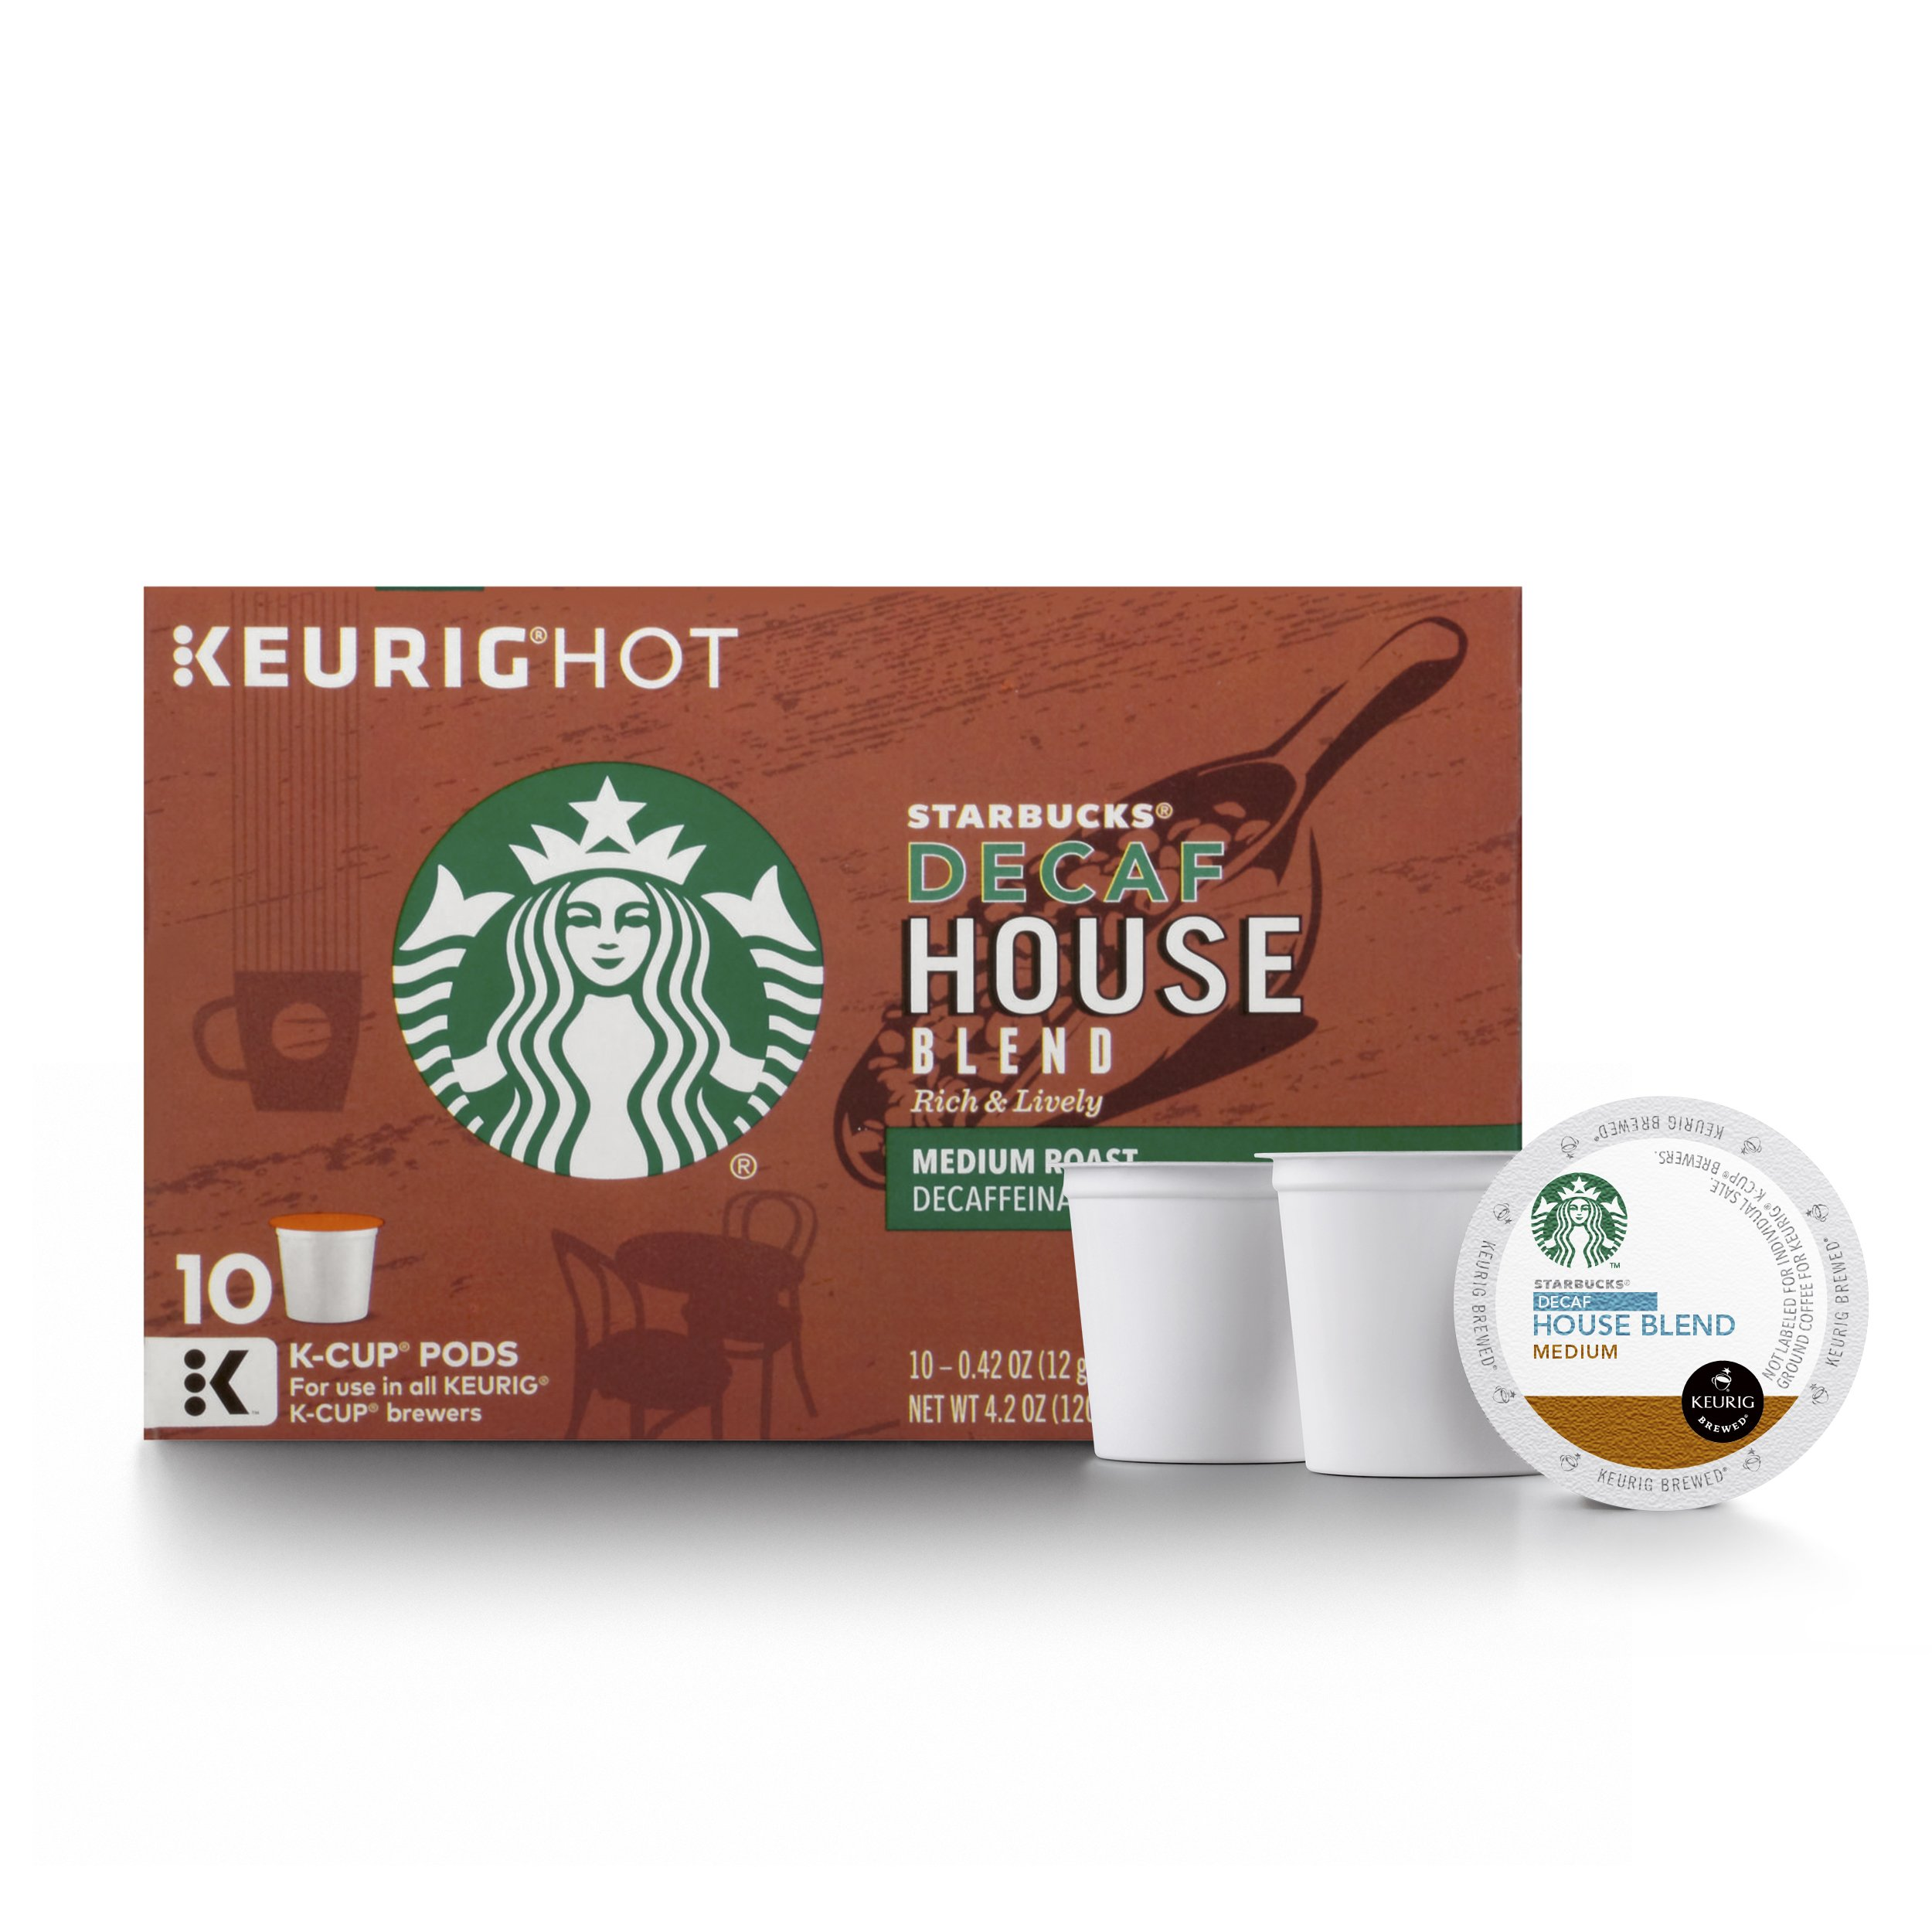 Starbucks Decaf House Blend Medium Roast Single Cup Coffee for Keurig Brewers, 6 Boxes of 10 (60 Total K-Cup pods)